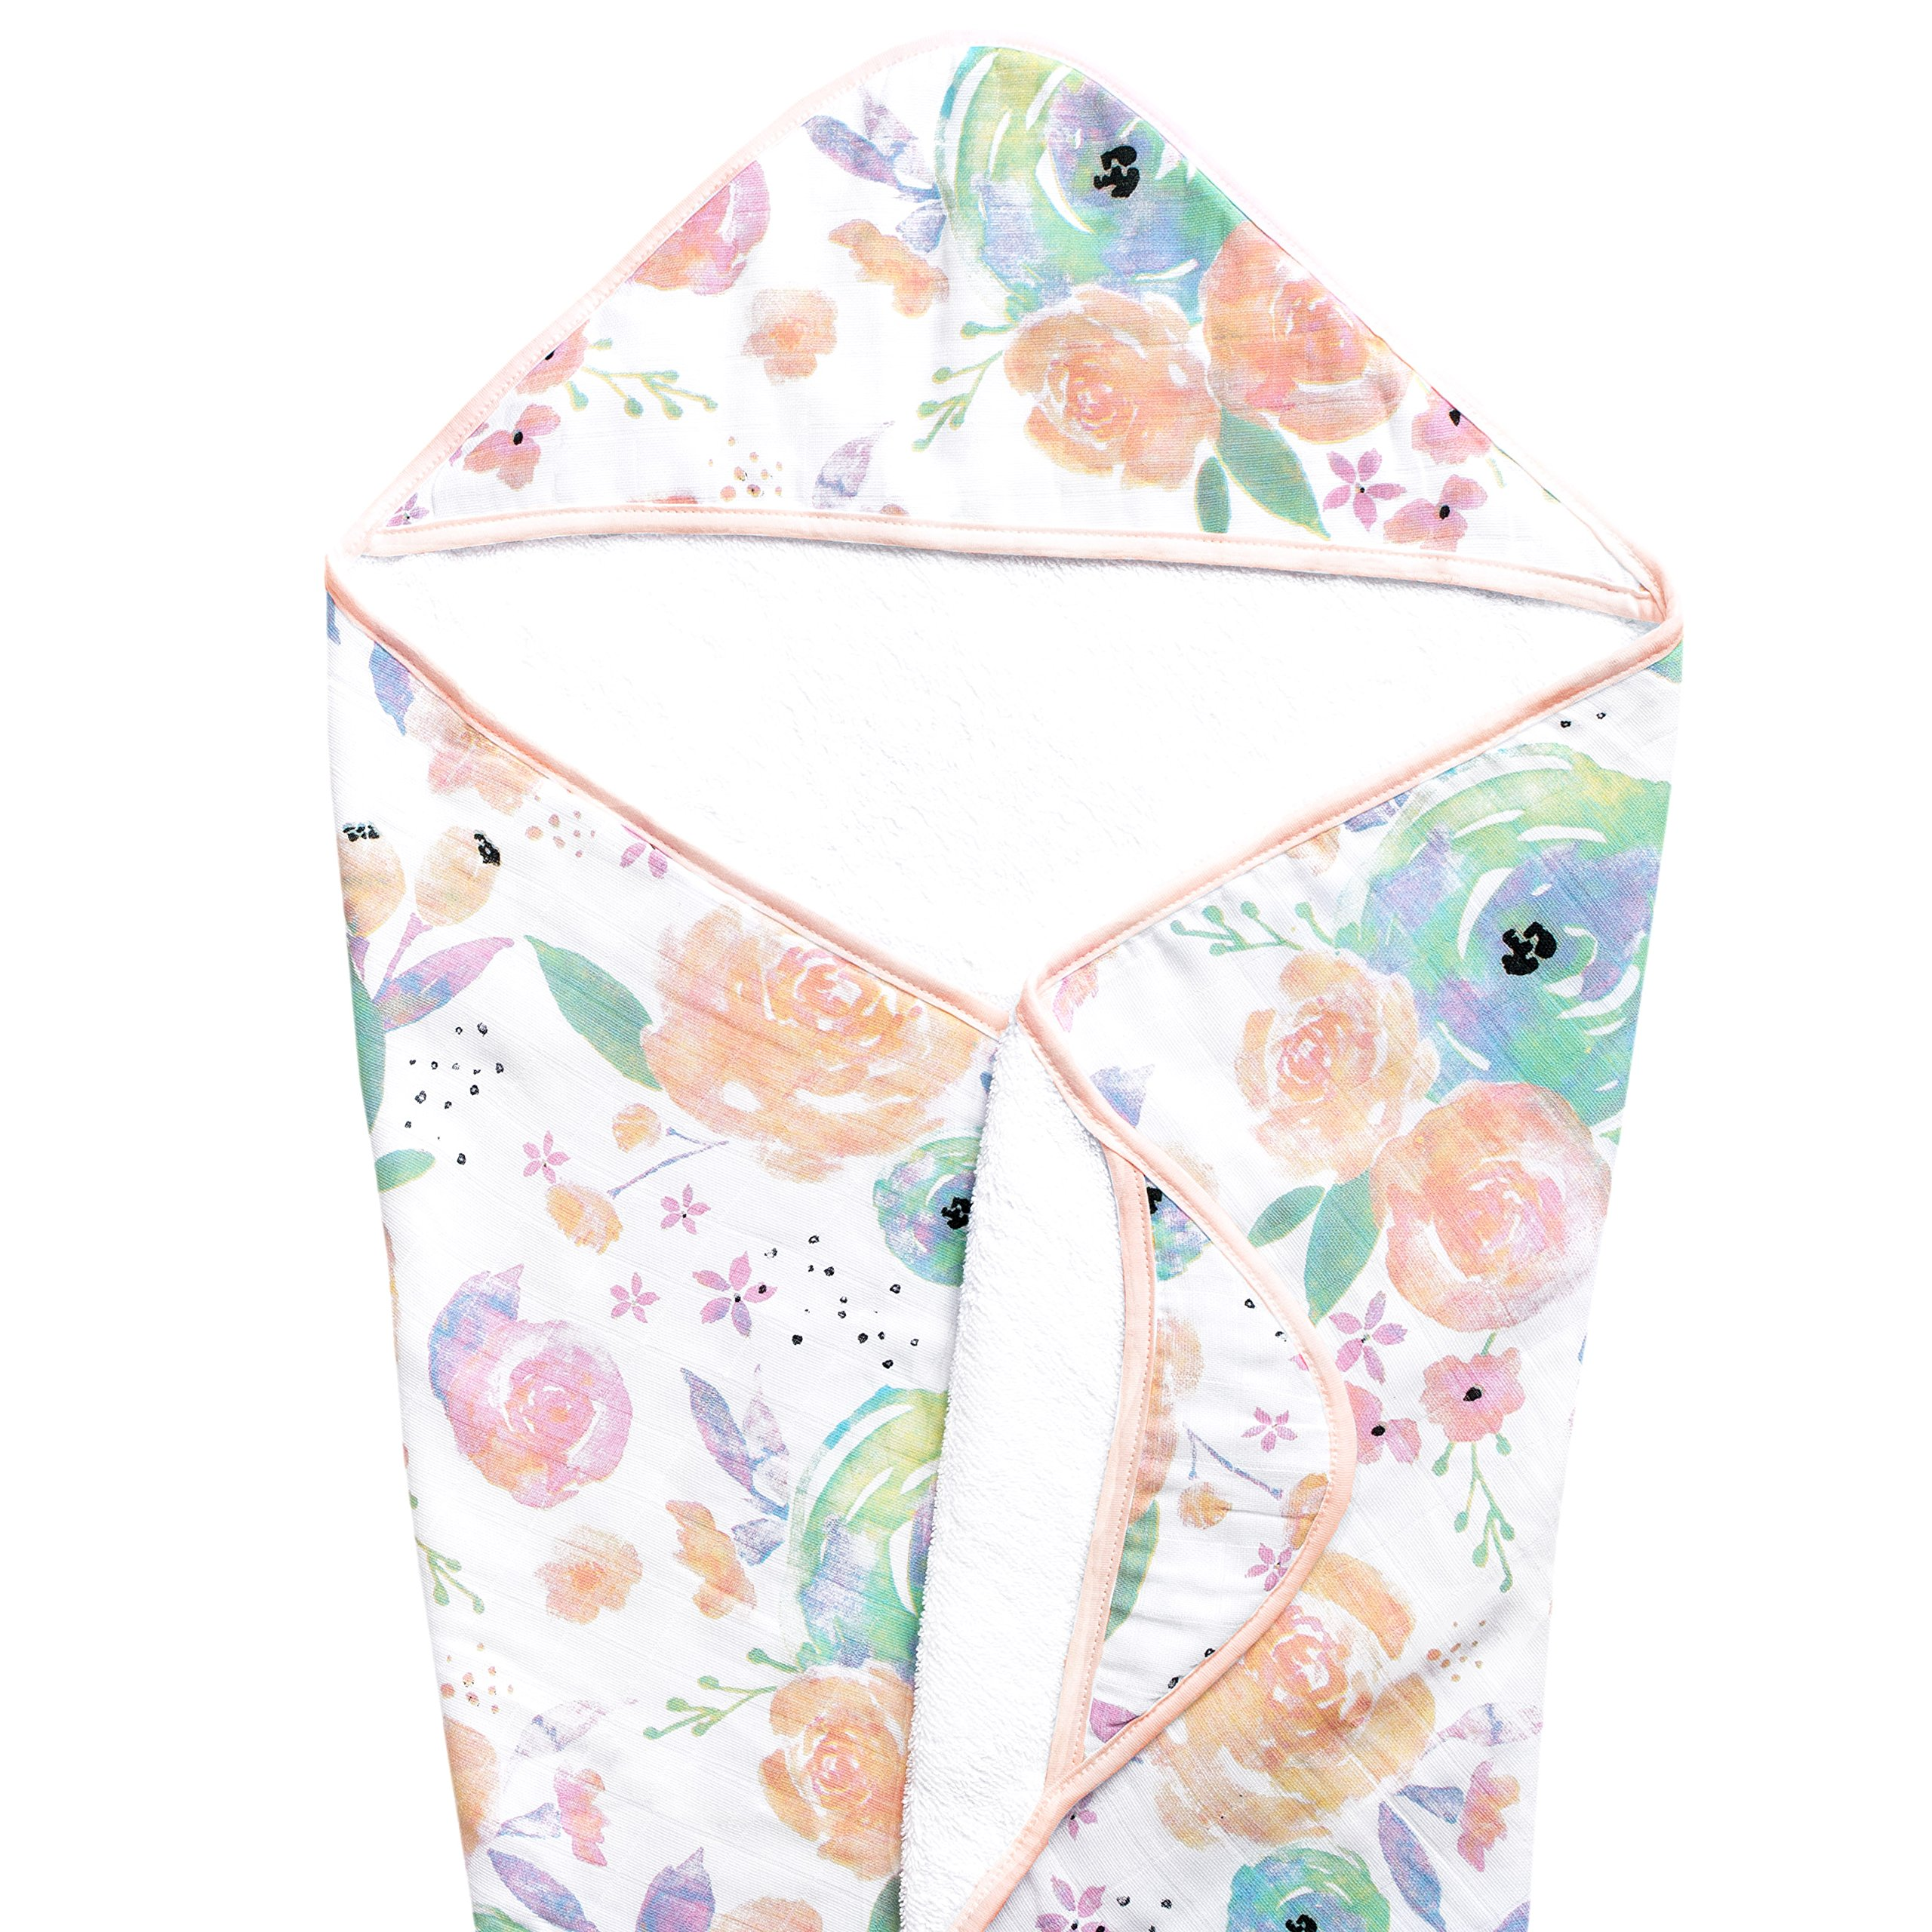 Muslin Hooded Bath Towel for Baby or Toddler with Terry Cloth Interior 33 inches''Bloom Floral'' by Copper Pearl